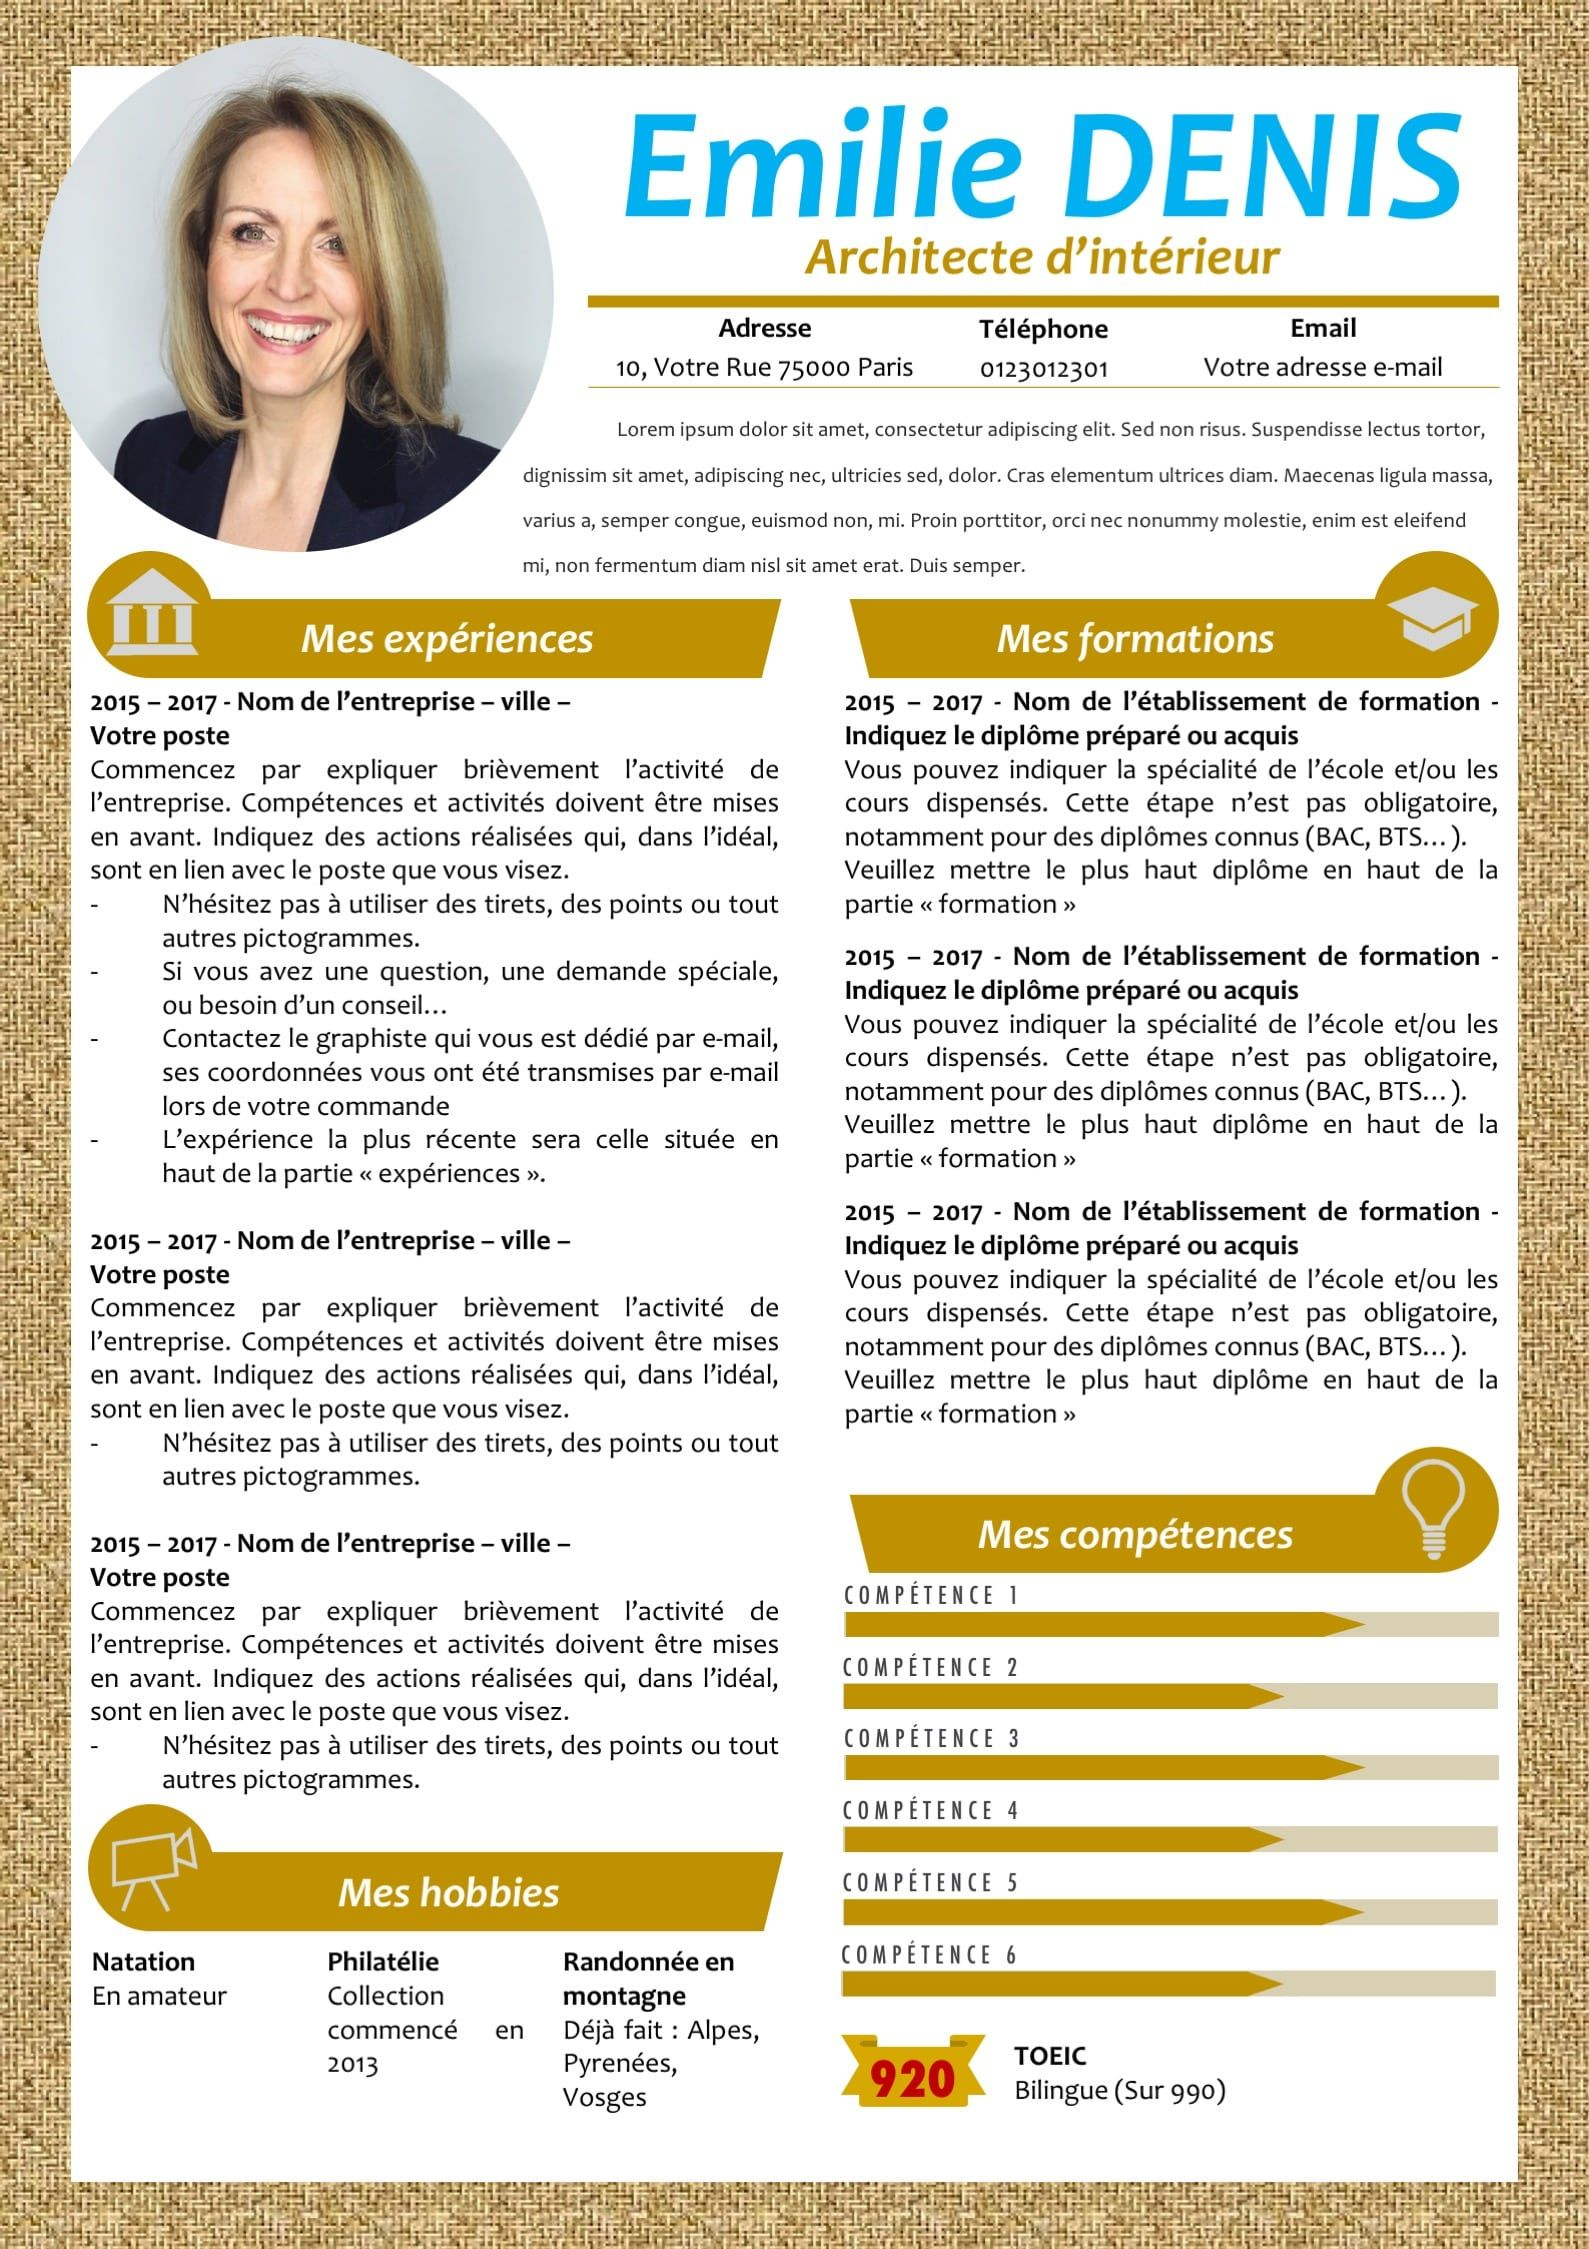 Modele Cv Et Lettre De Motivation Marron Modifiable Pour 6 99 Lettre De Motivation Modele Cv Modele De Cv Design